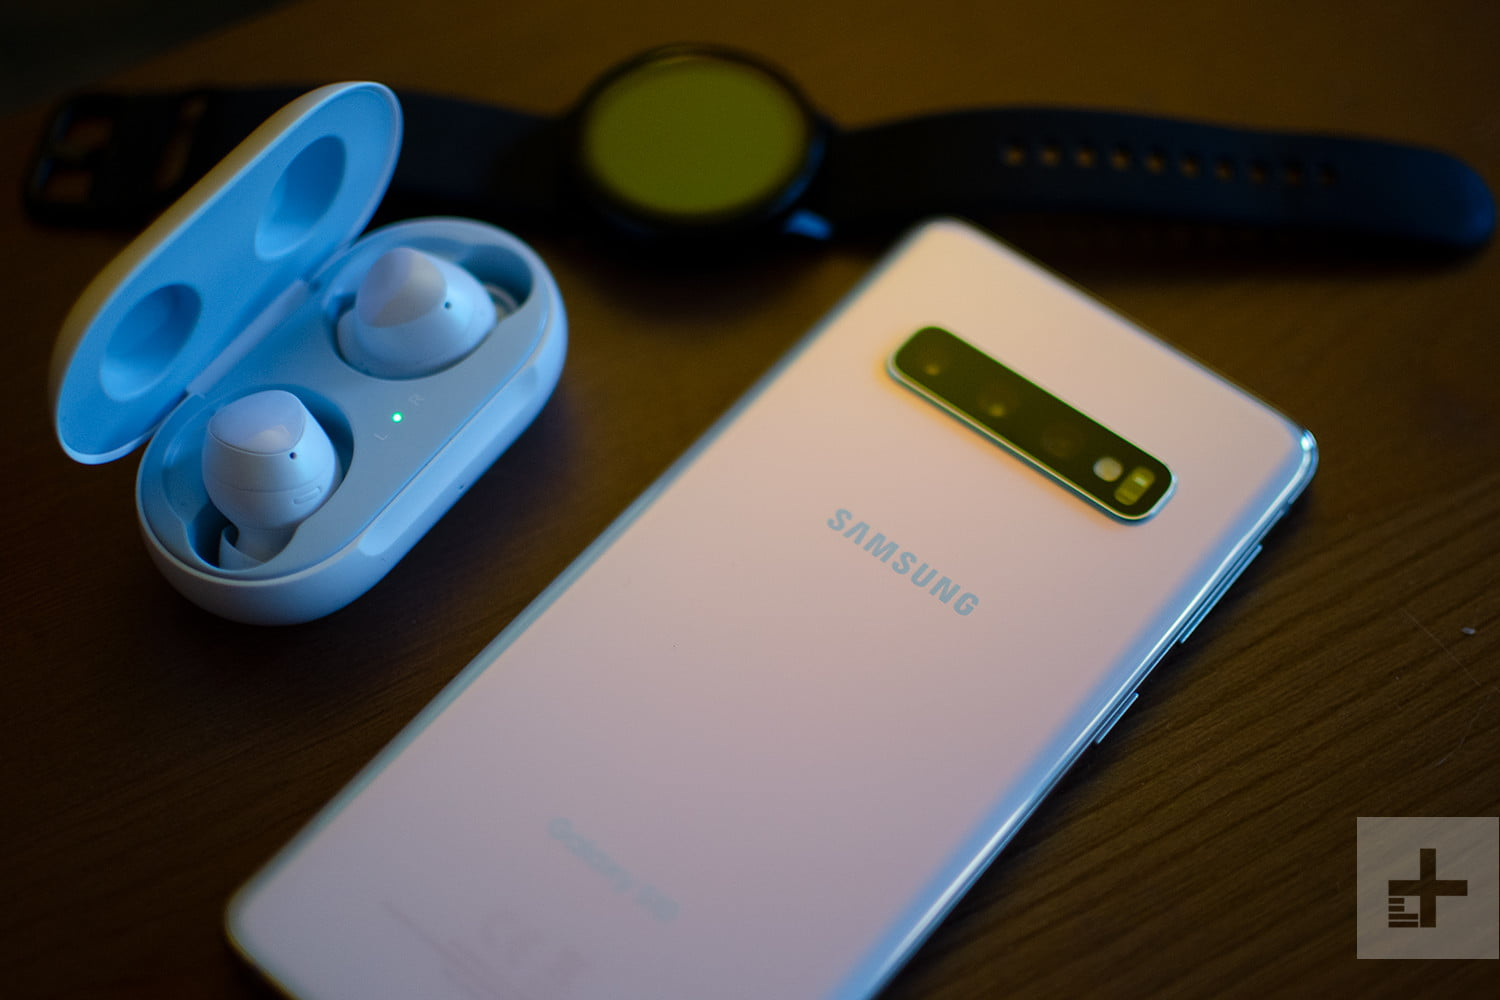 Cheap-But-Cool Galaxy A20, A50 Spotted in U S  Release Tease